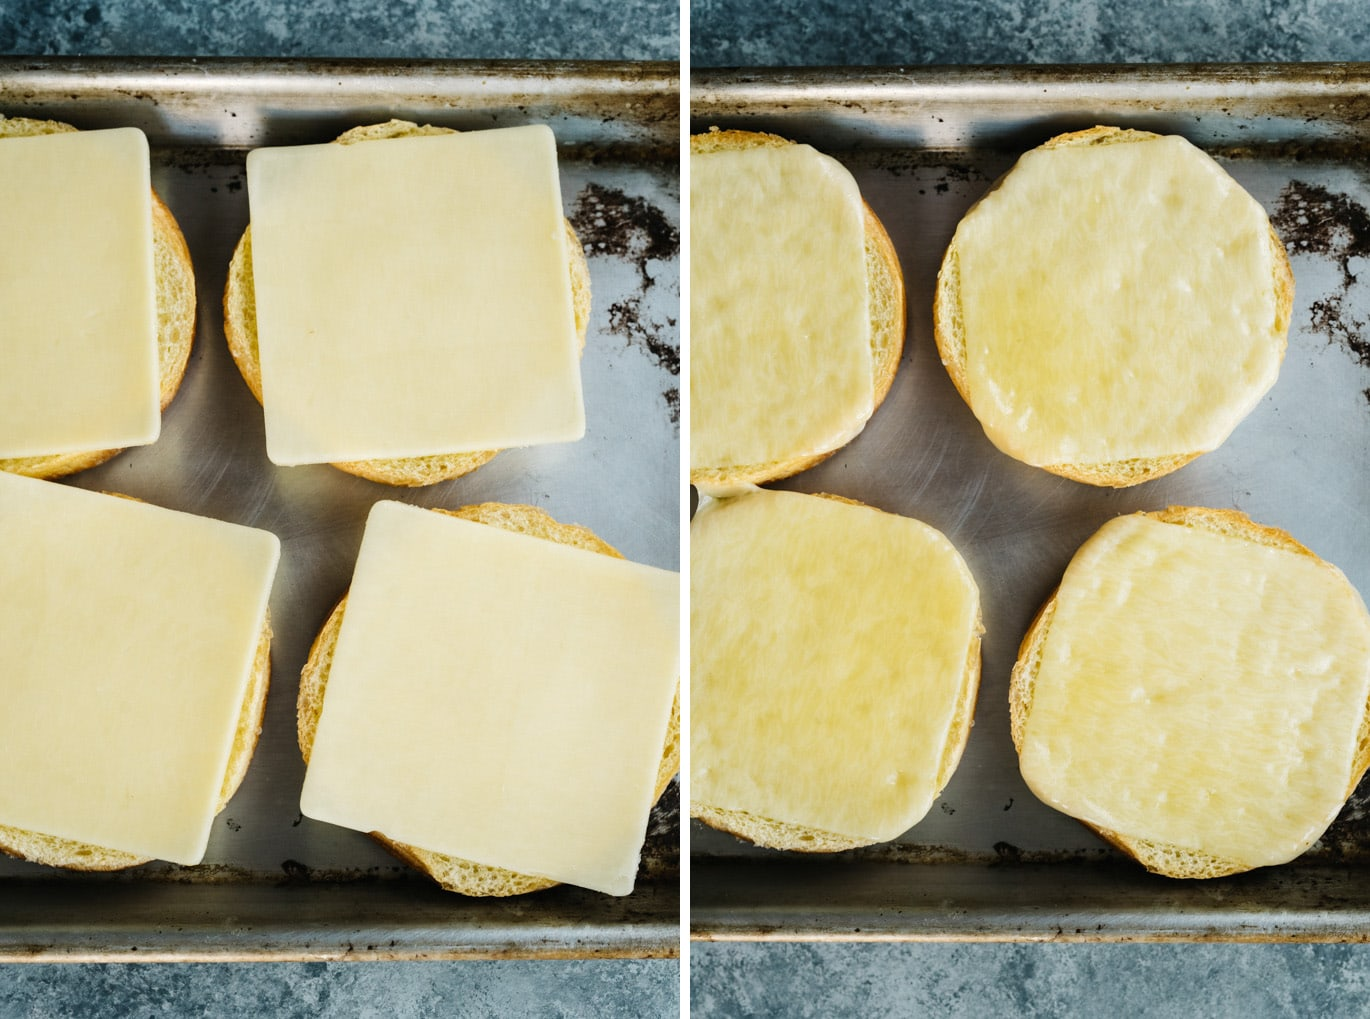 A slice of sharp cheddar over a brioche bun before and after being broiled.